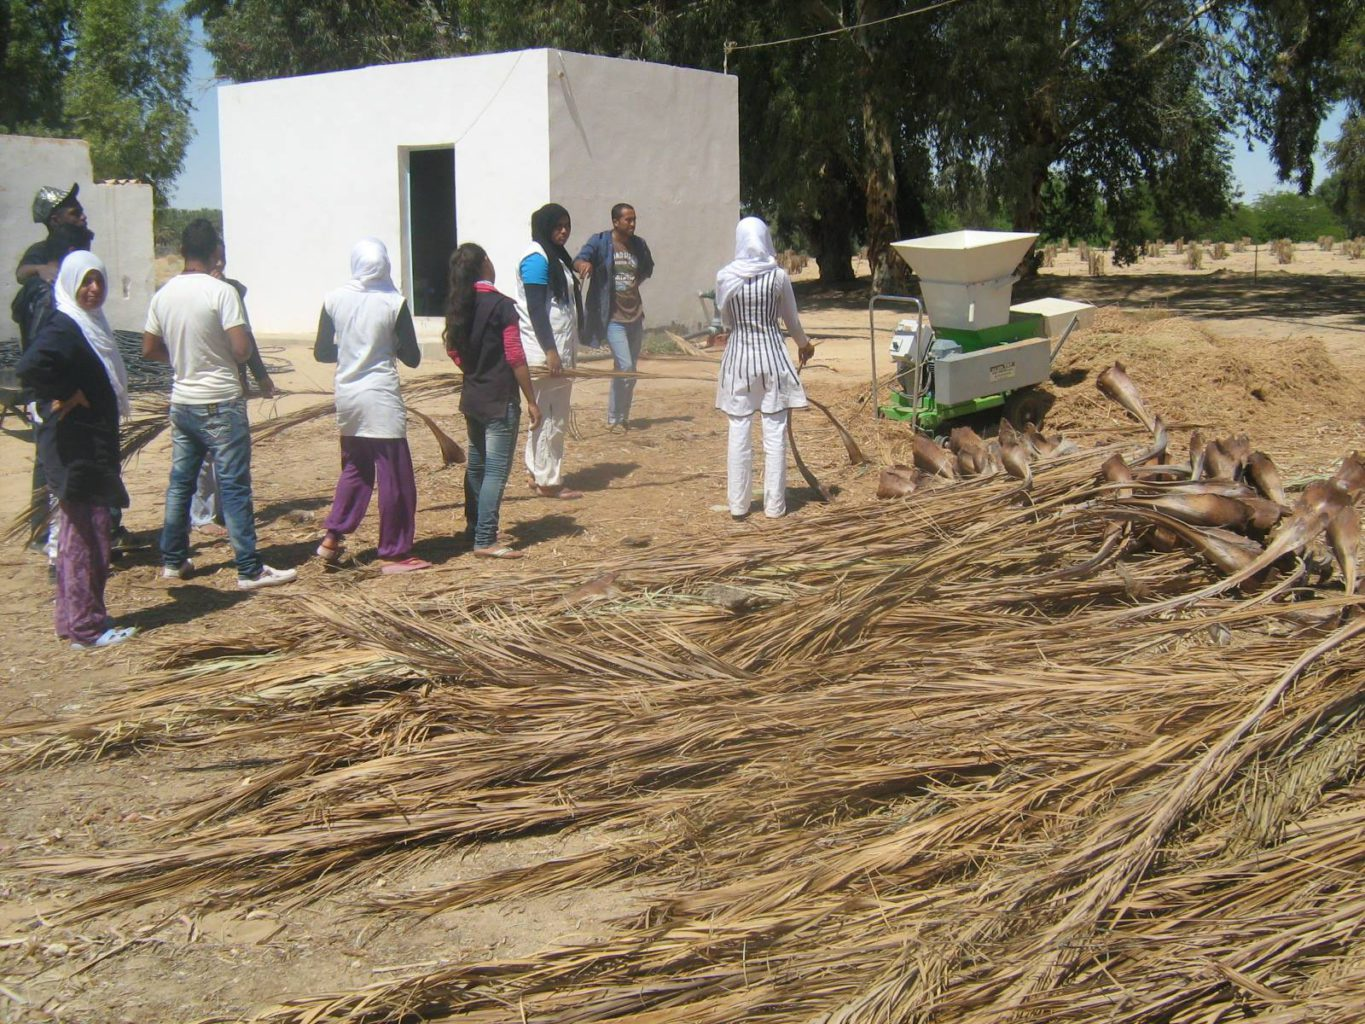 A new venture is turning palm tree waste into fertilizers |The Switchers